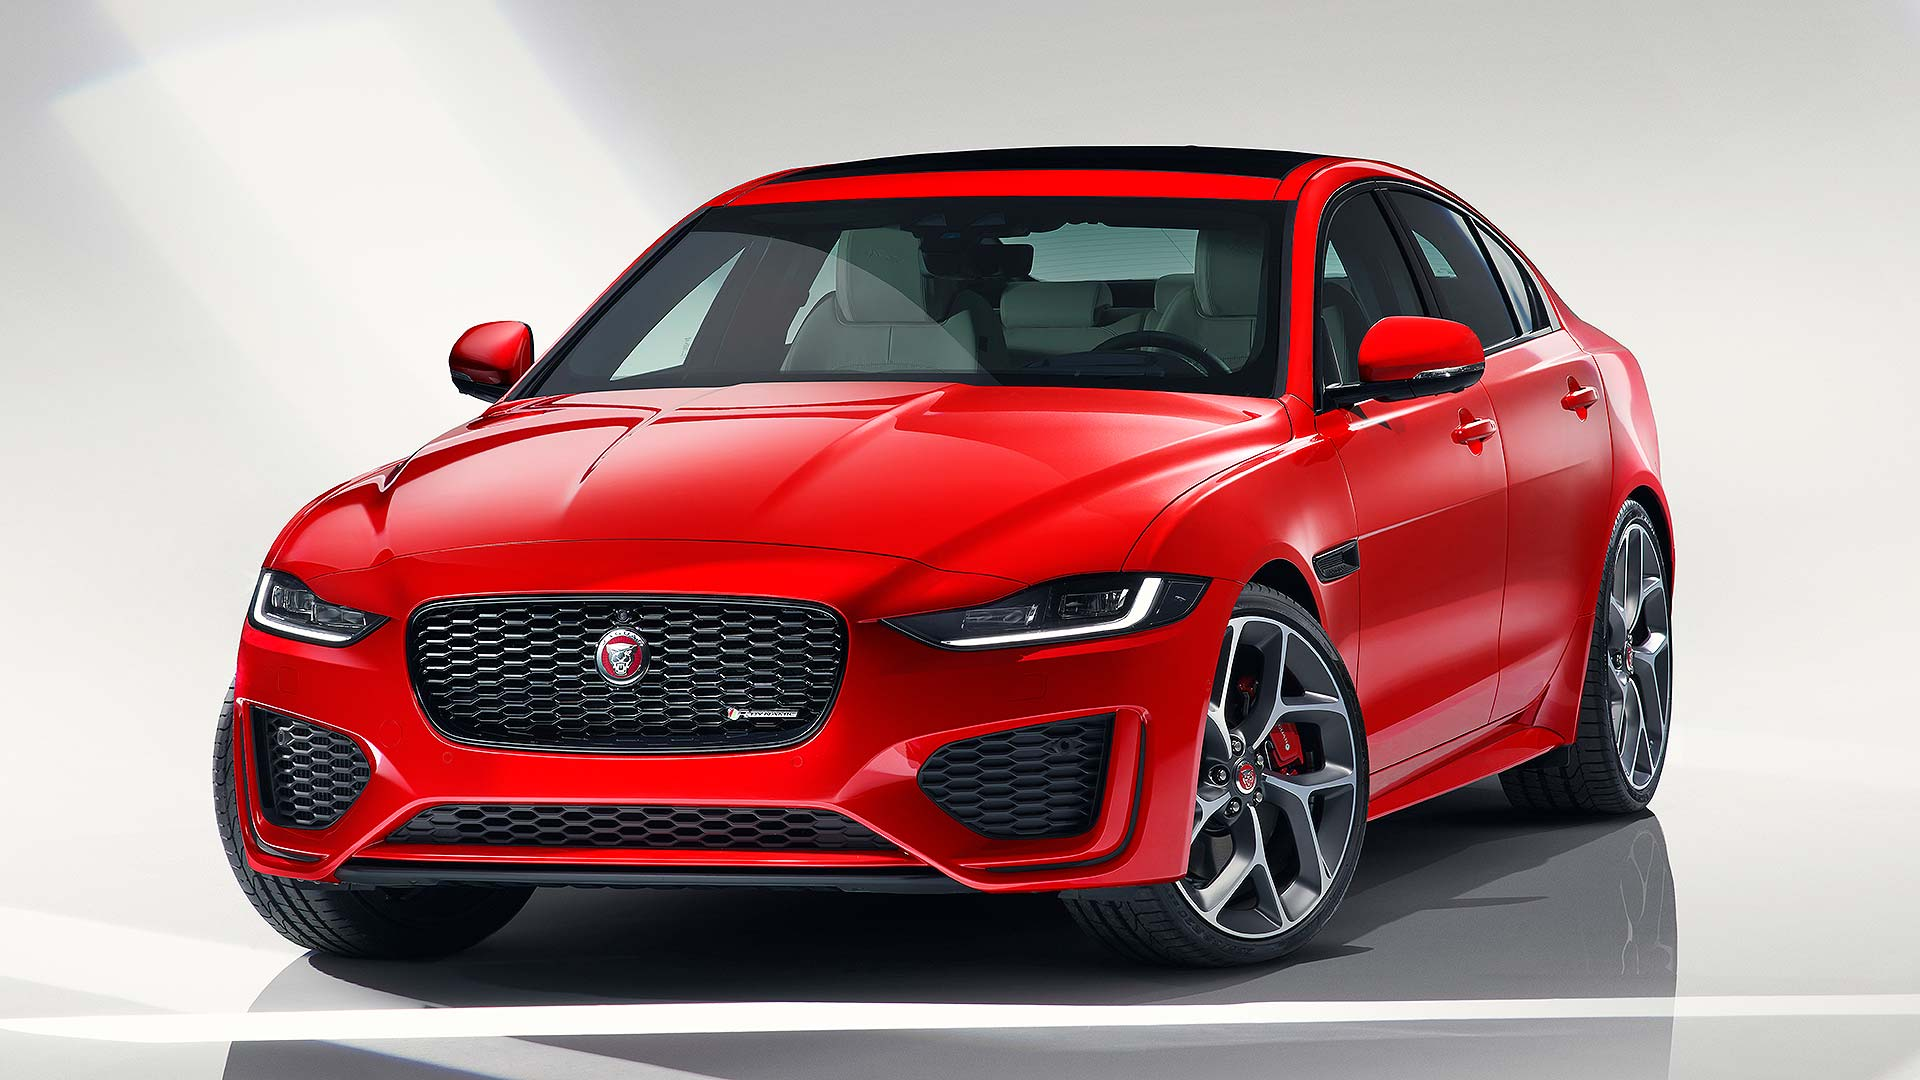 Jaguar Xe Engine Jaguar Xe Overhauled With New Gadgets And Cleanest In Class